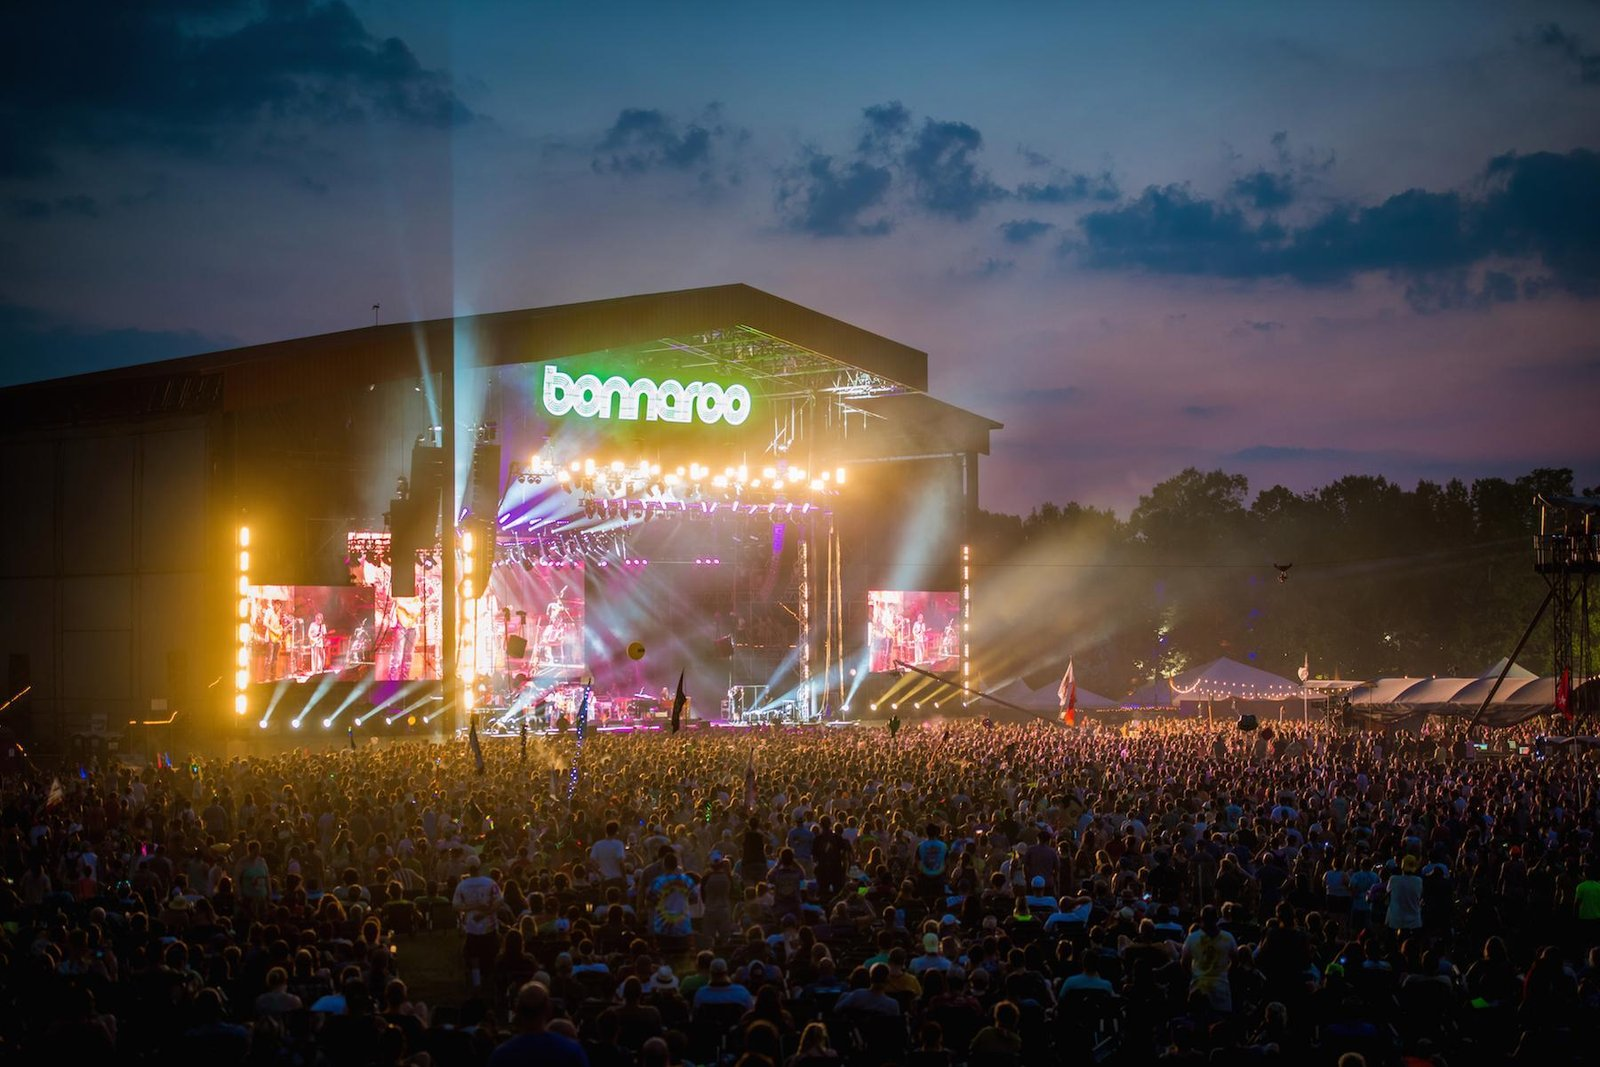 What stage at Bonnaroo 2017